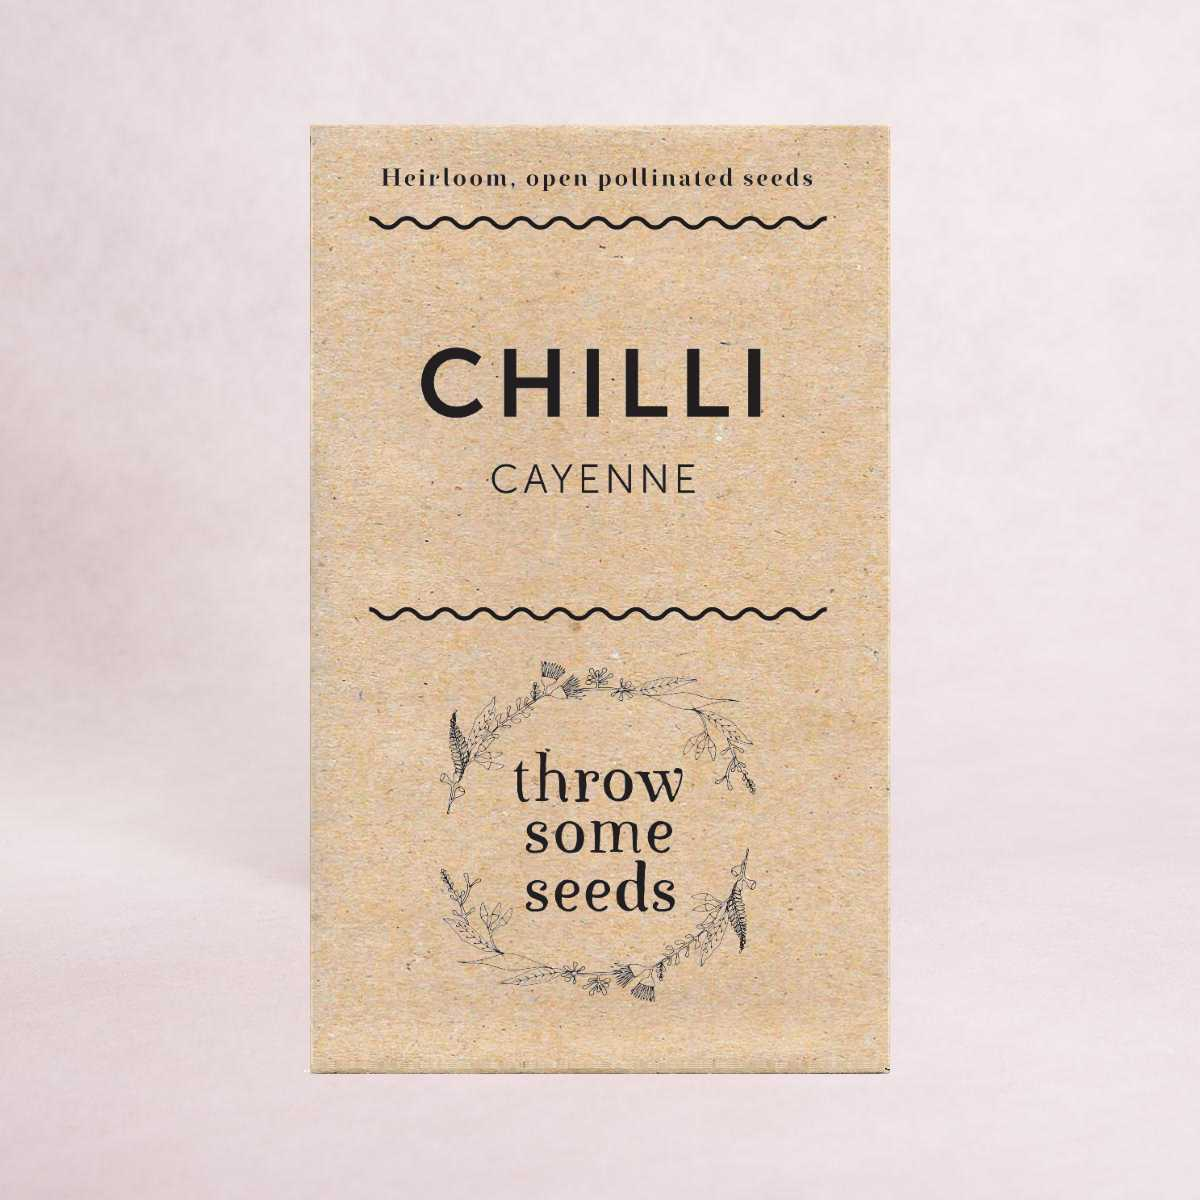 Chilli (Cayenne) Seeds - Seeds - Throw Some Seeds - Australian gardening gifts and eco products online!